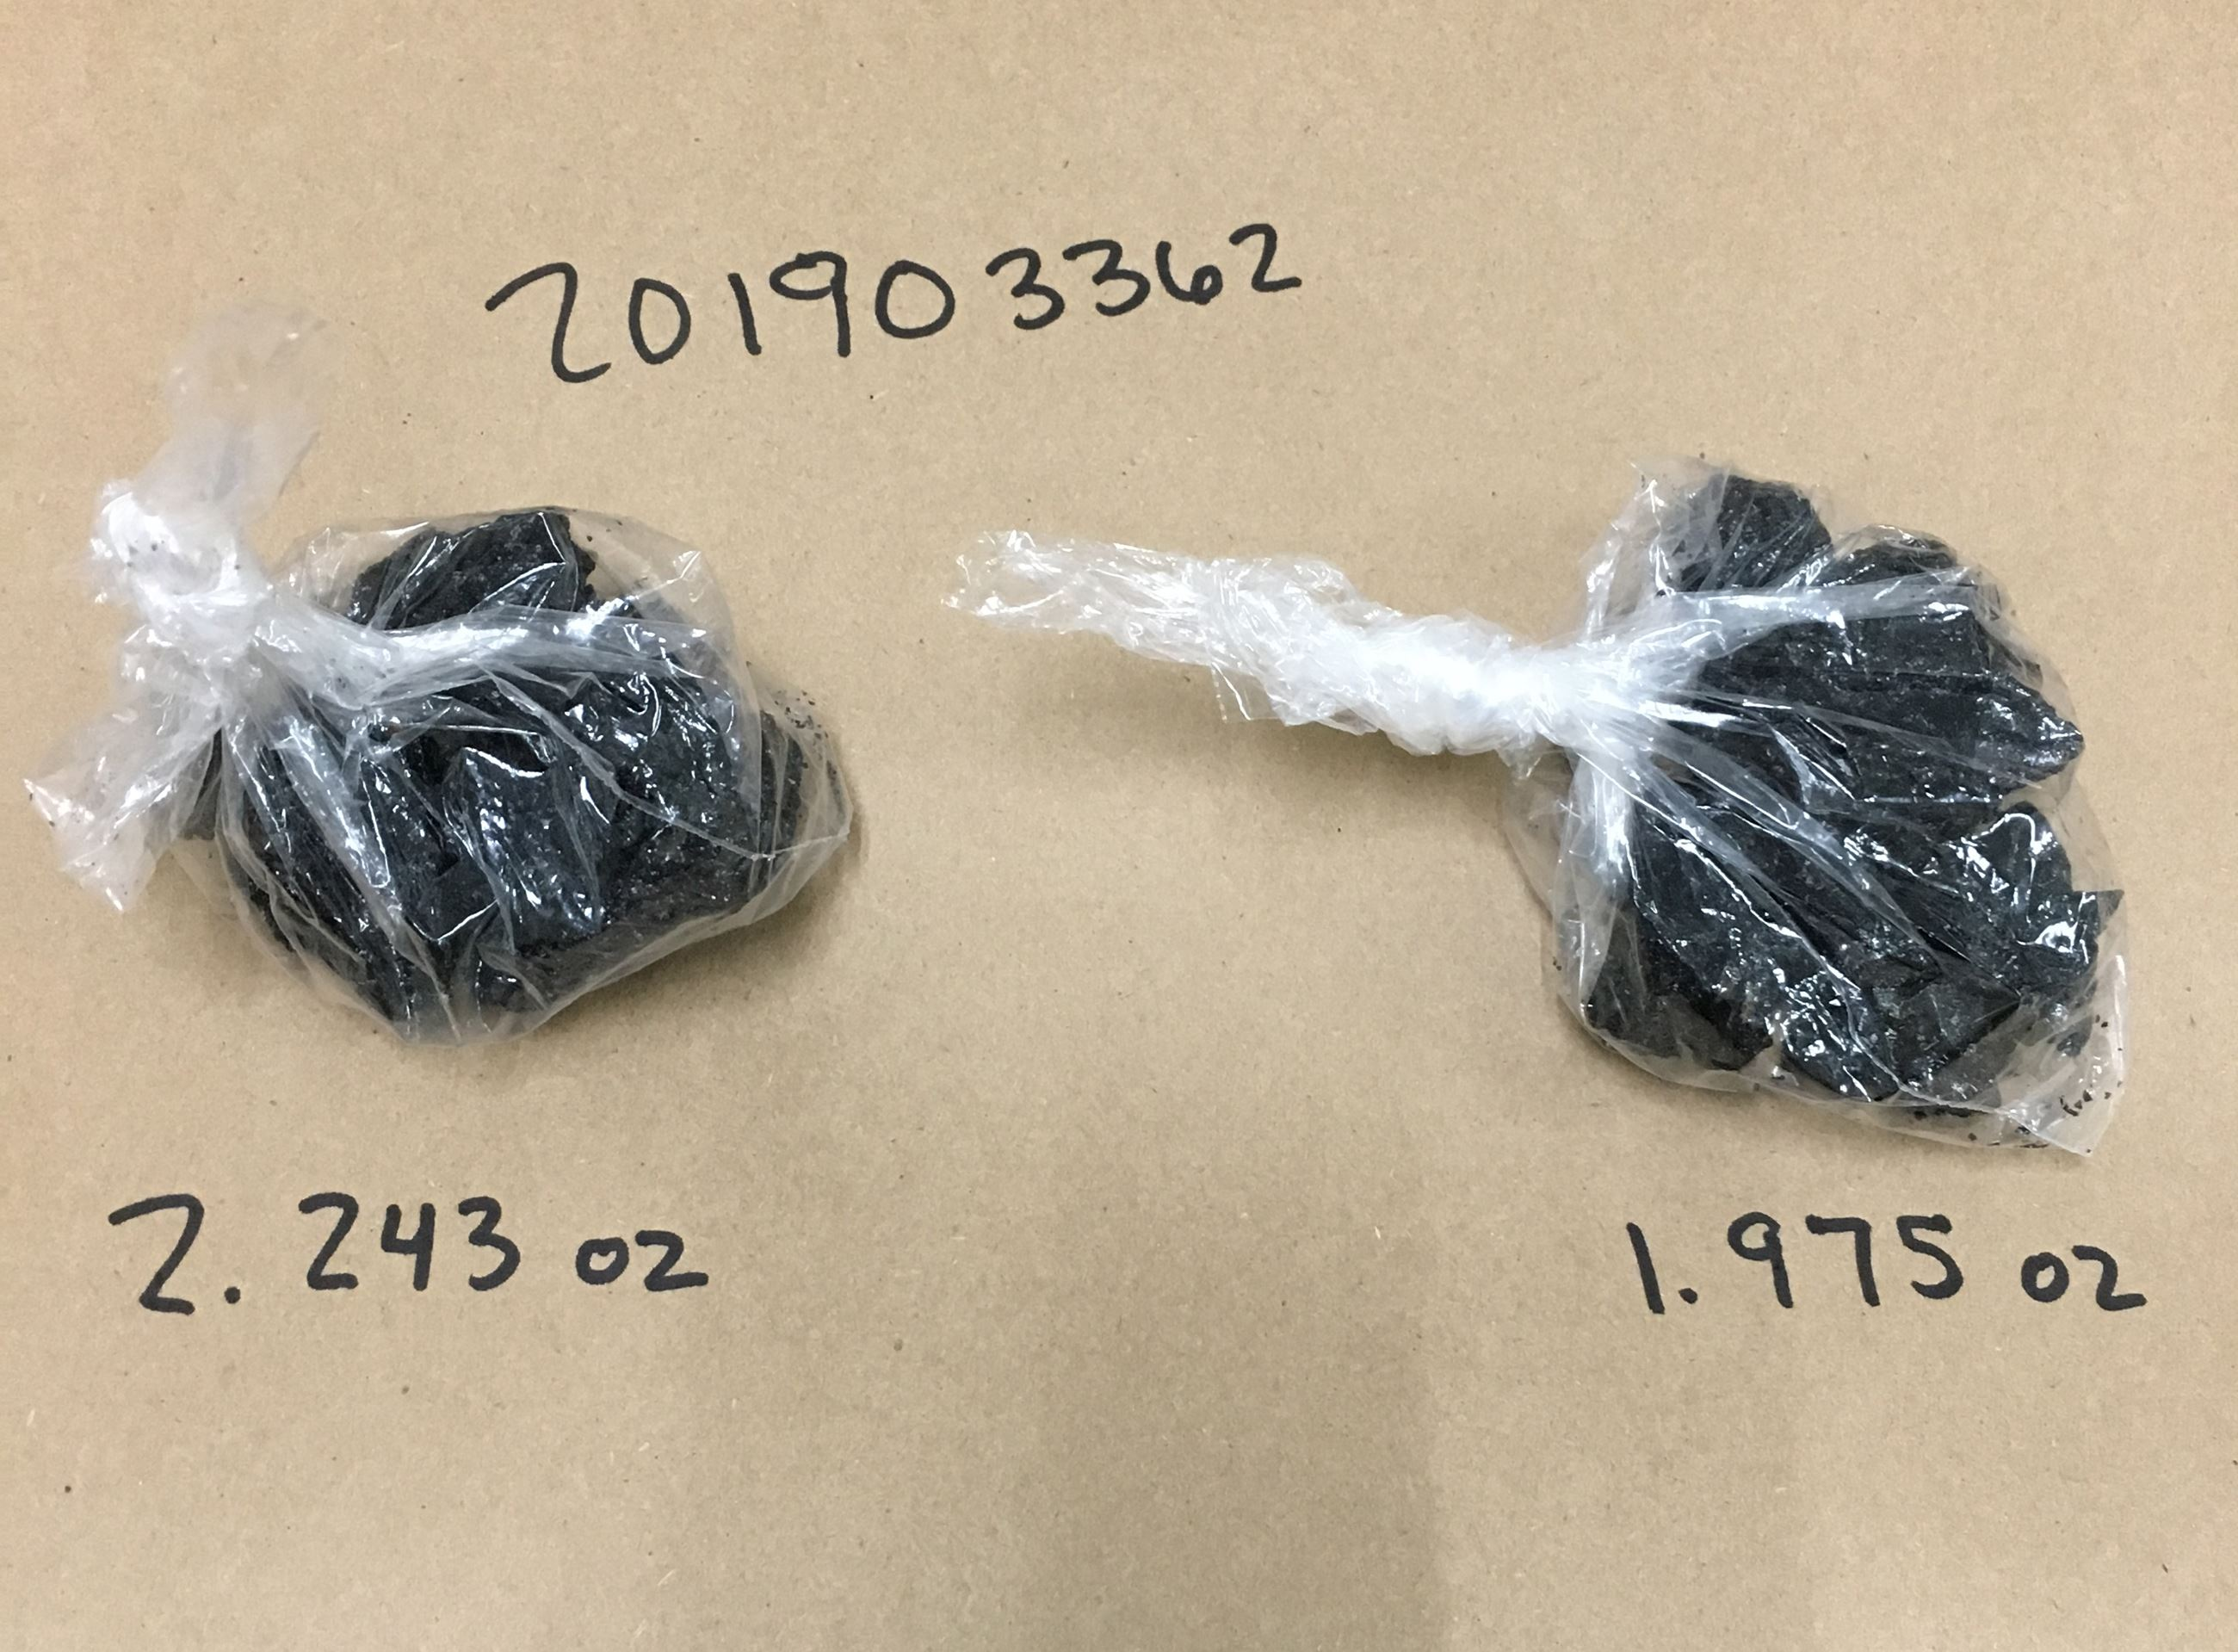 Two bags of heroin